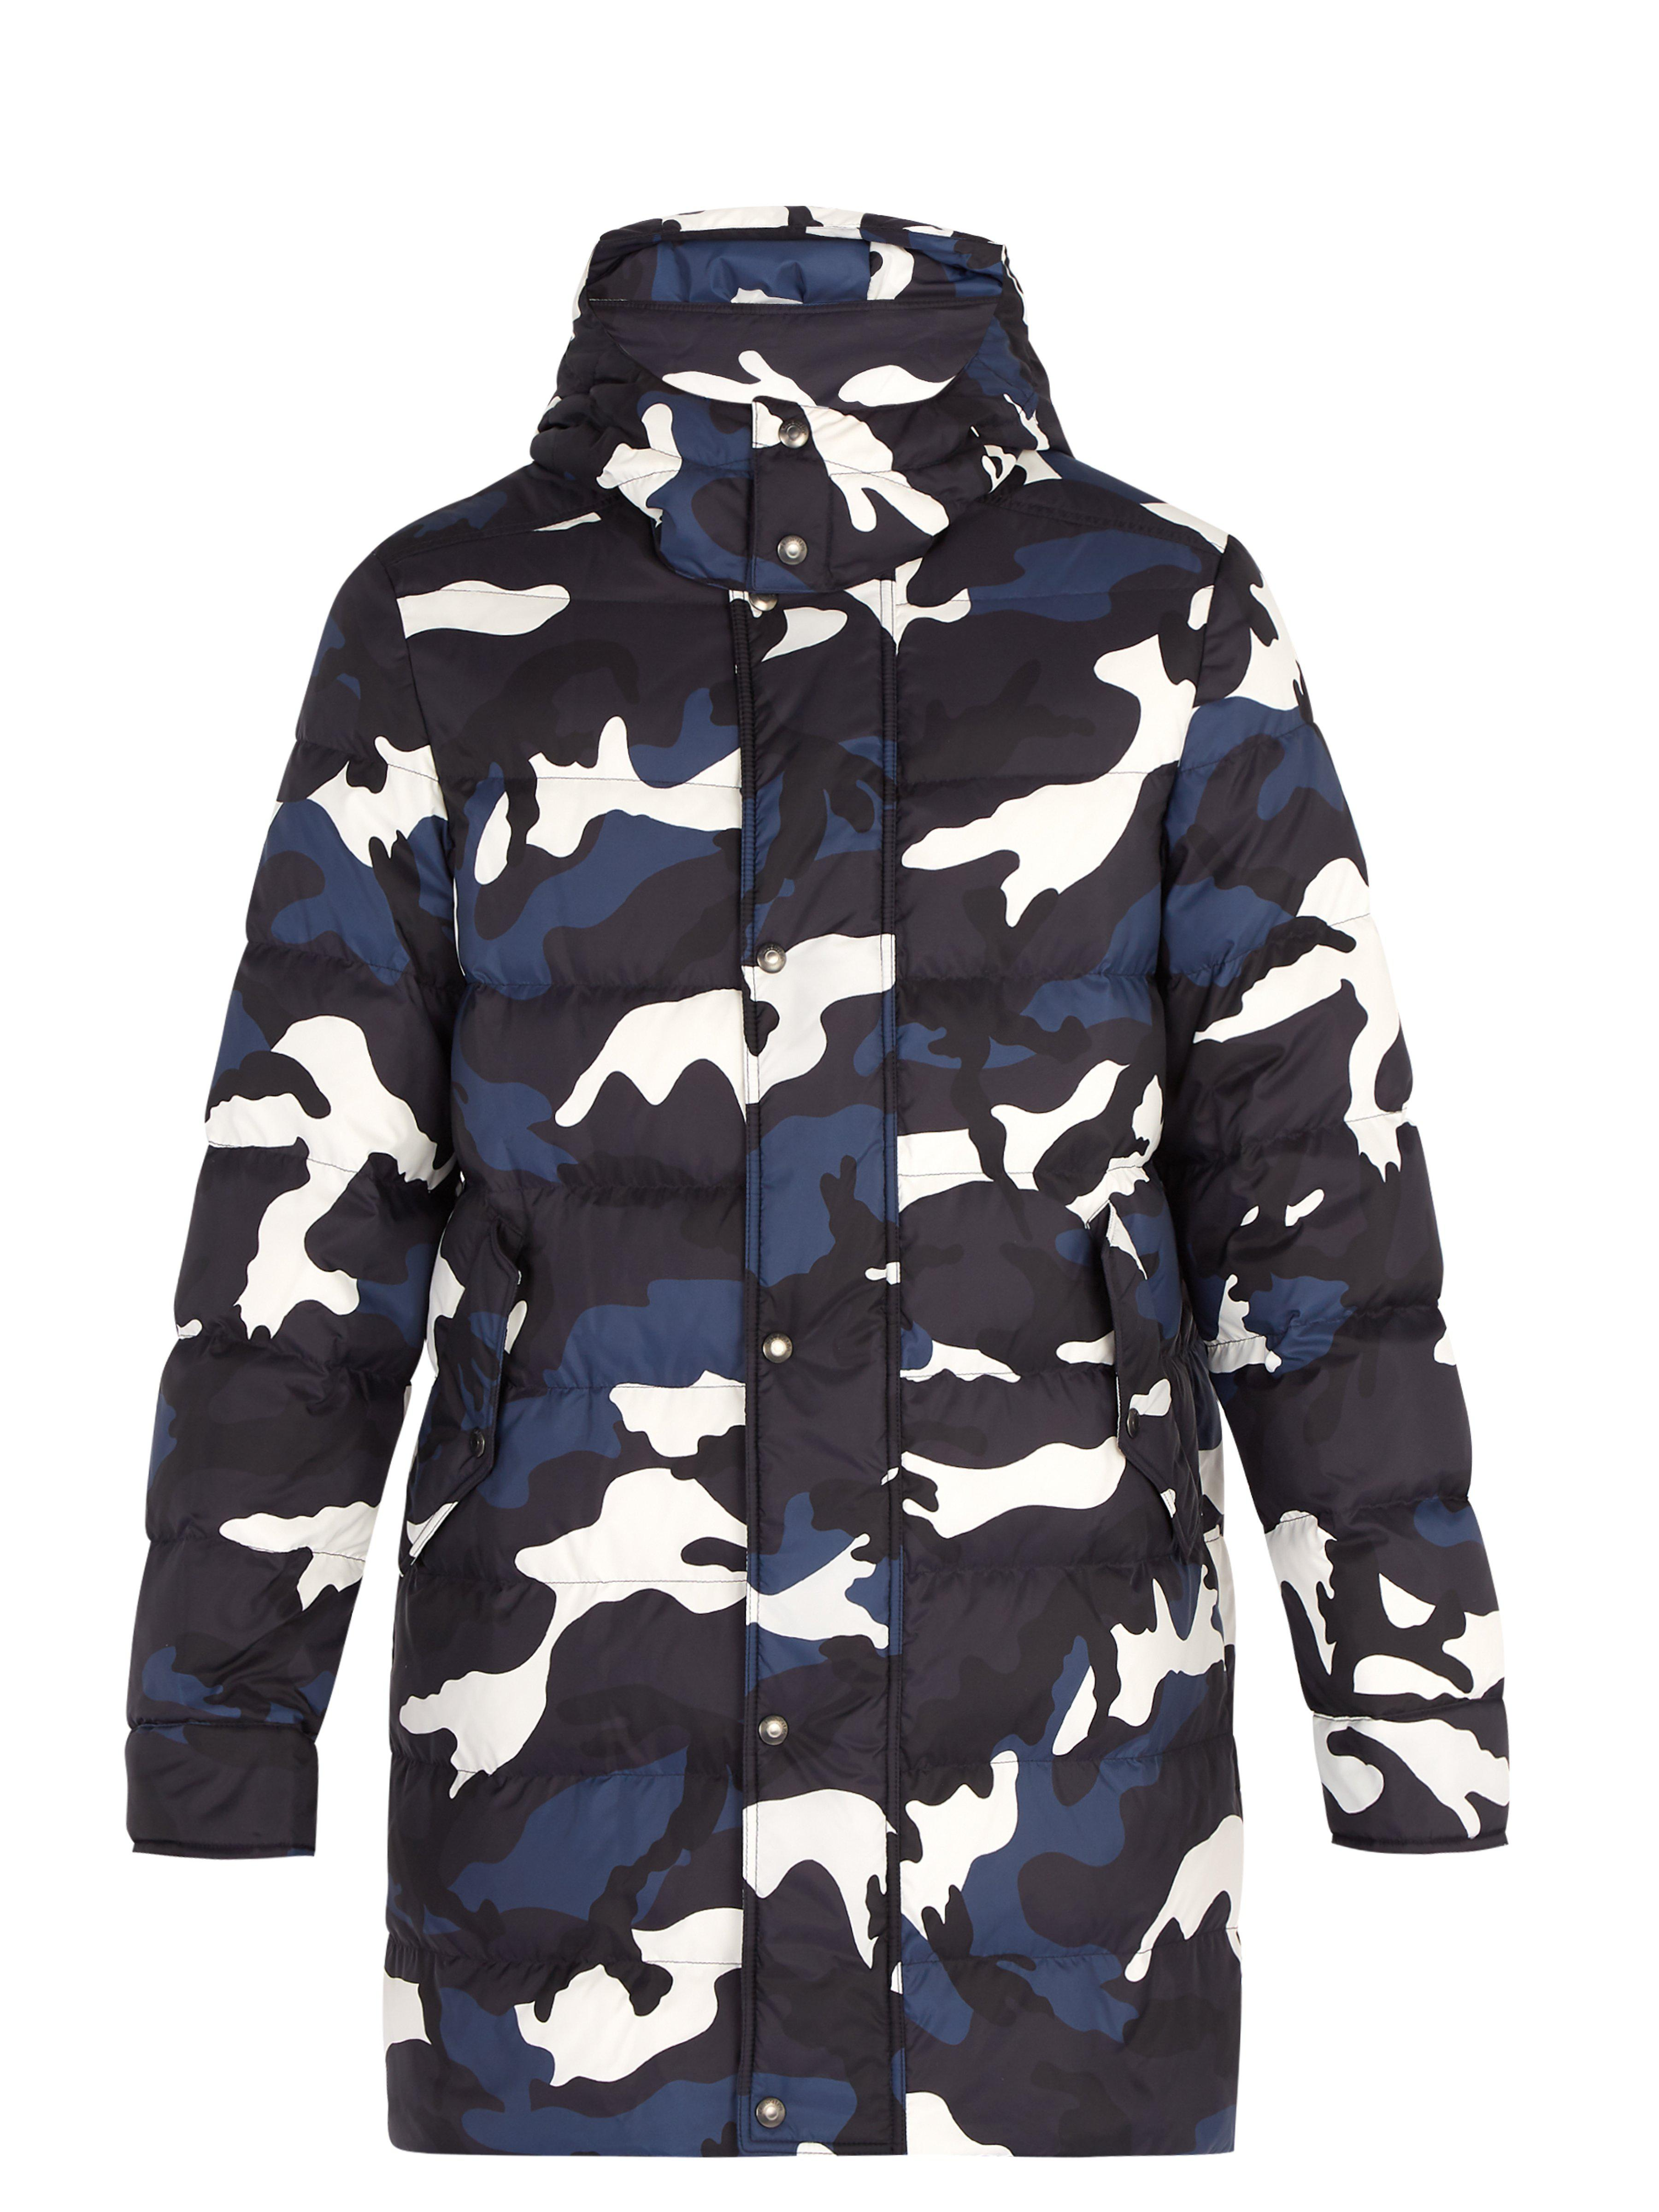 af540ead0e89 valentino-blue-Camouflage-Print-Quilted-Down-Jacket.jpeg